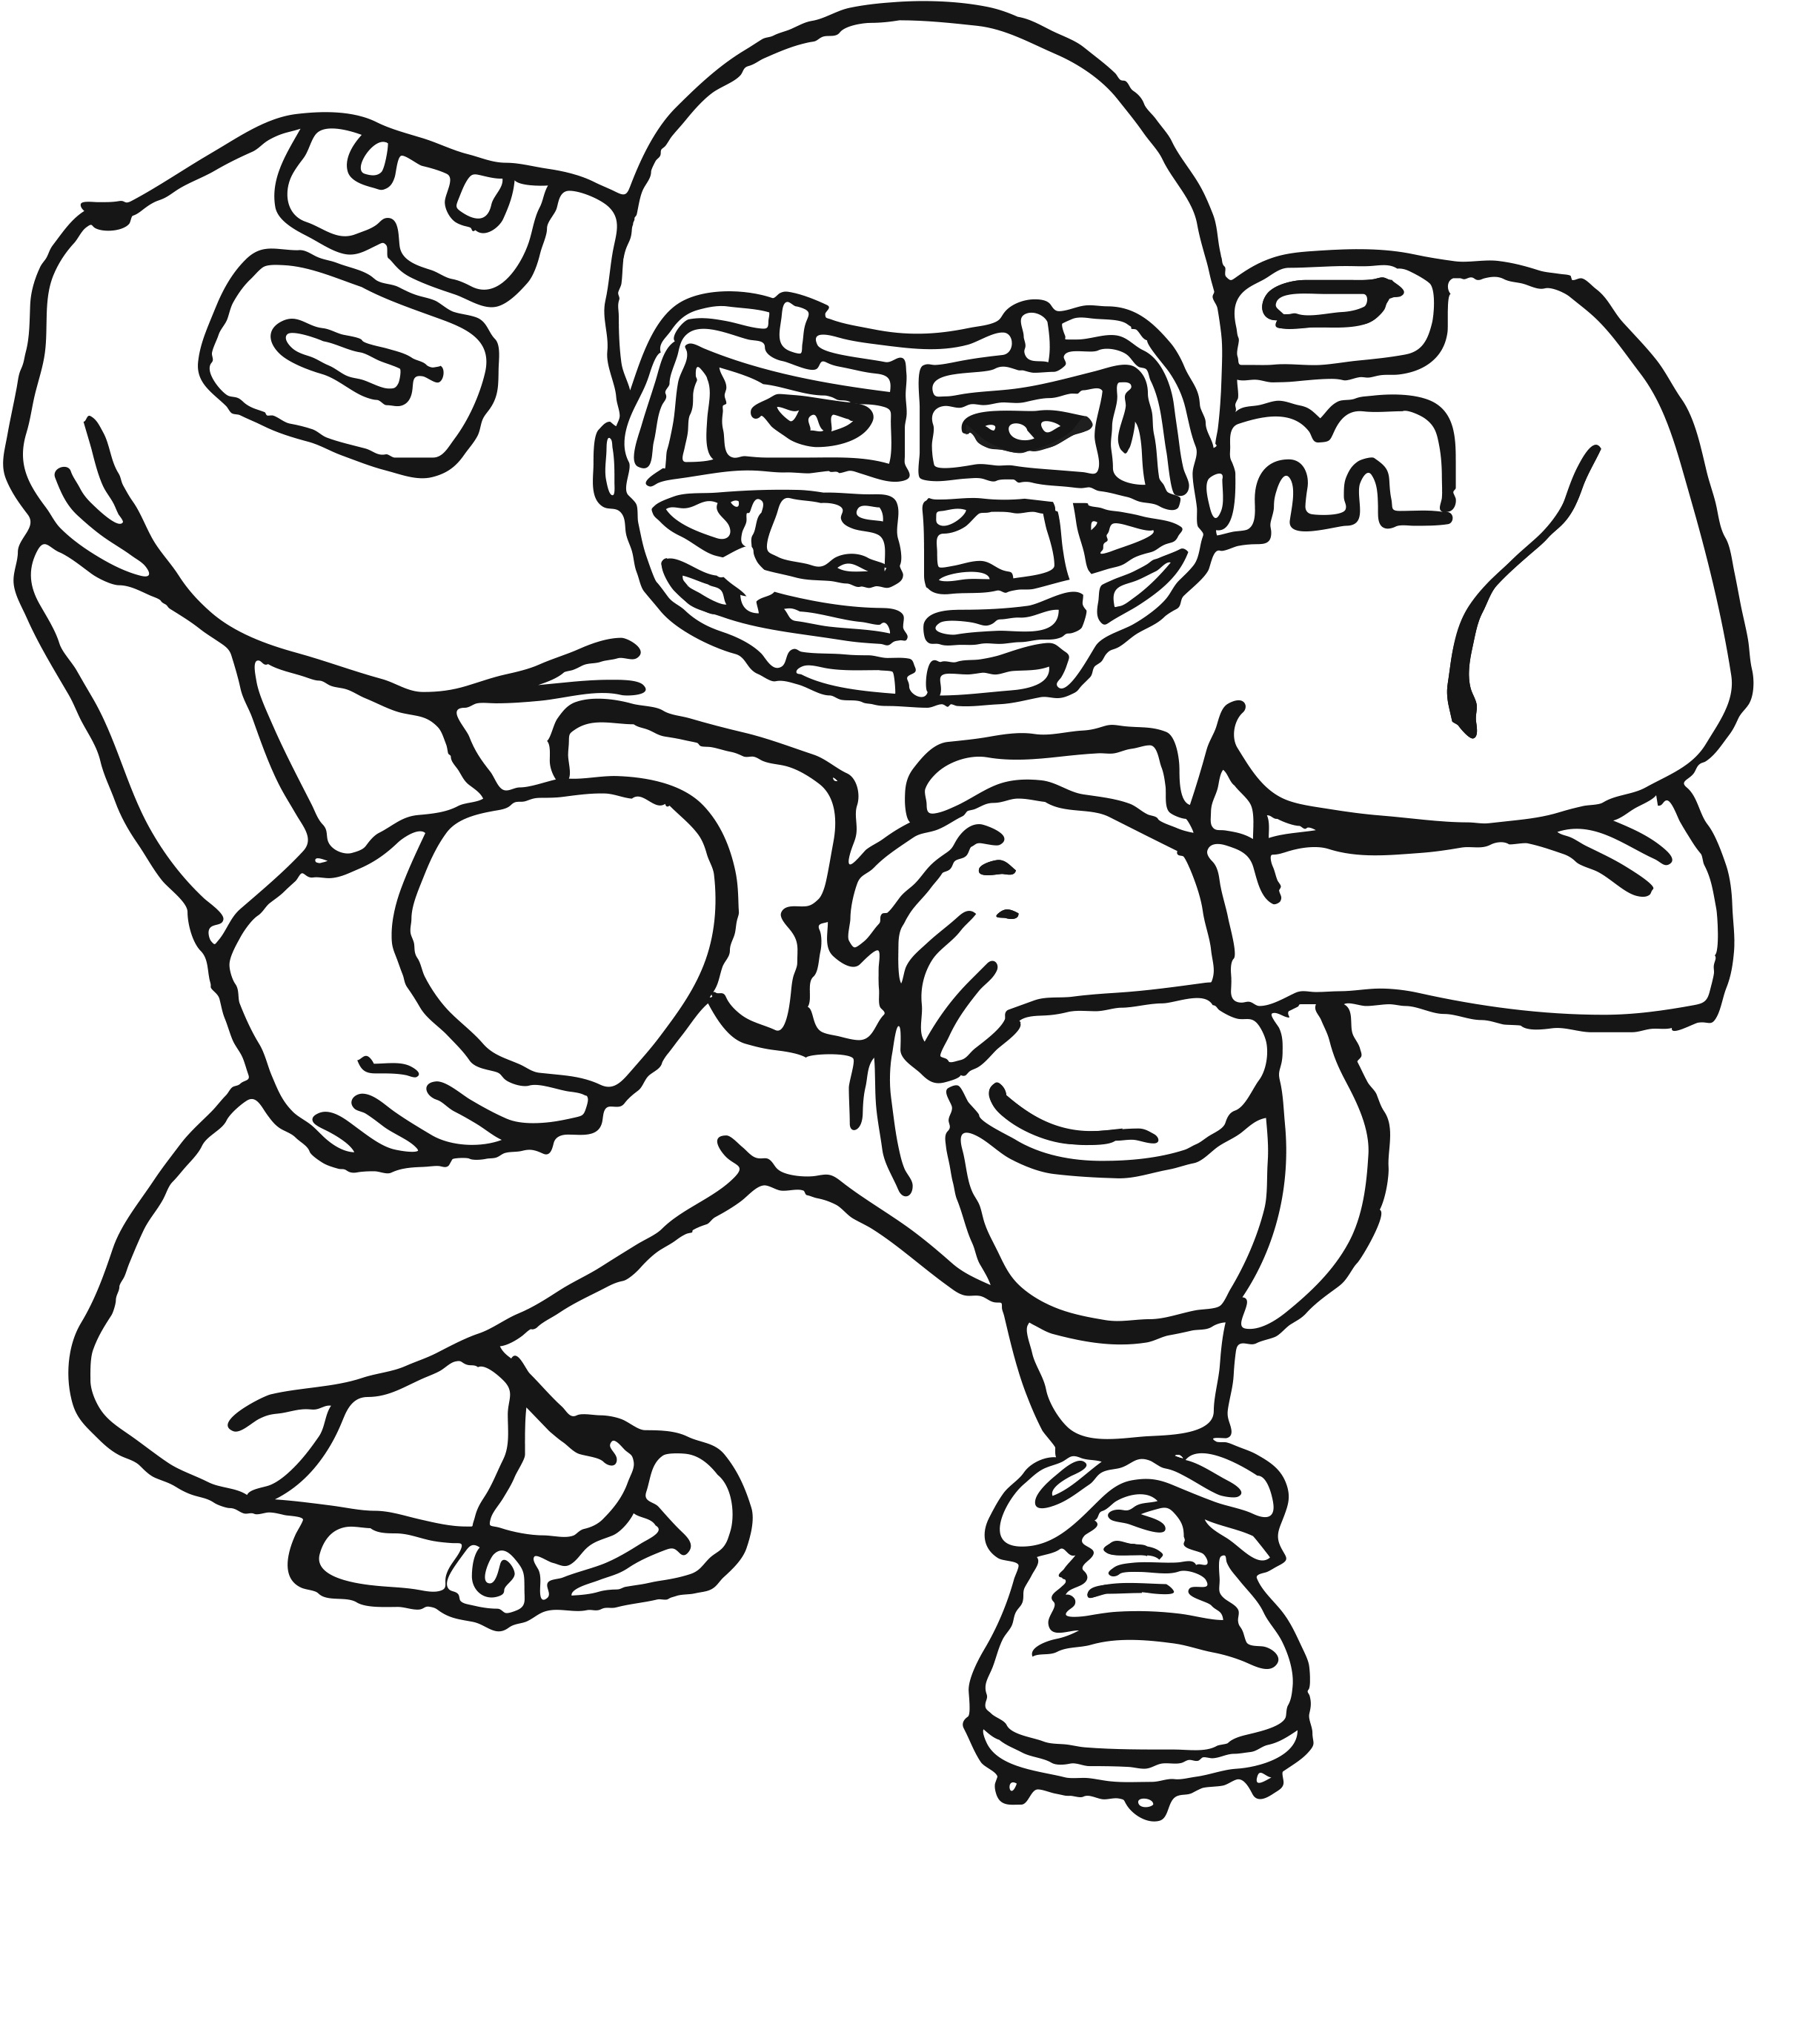 Coloring ~ Football Coloring Sheets Colts Pages Free Stunning Nfl - Free Printable Seahawks Coloring Pages